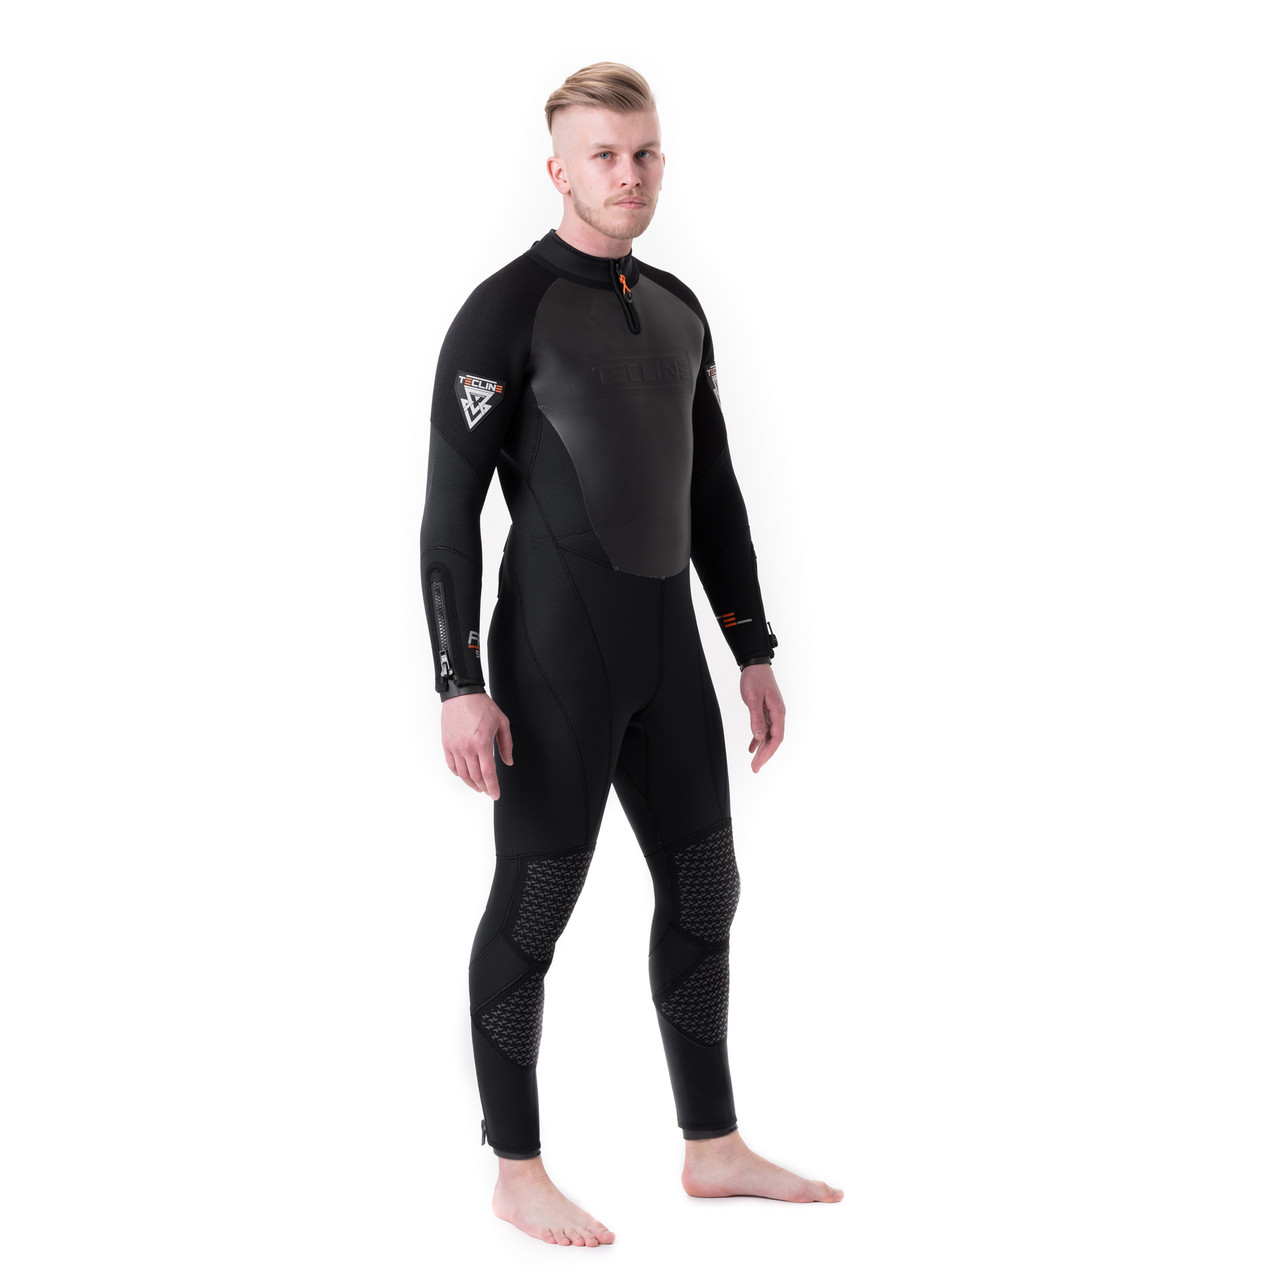 Tecline Proterm 7mm Wetsuit Overall